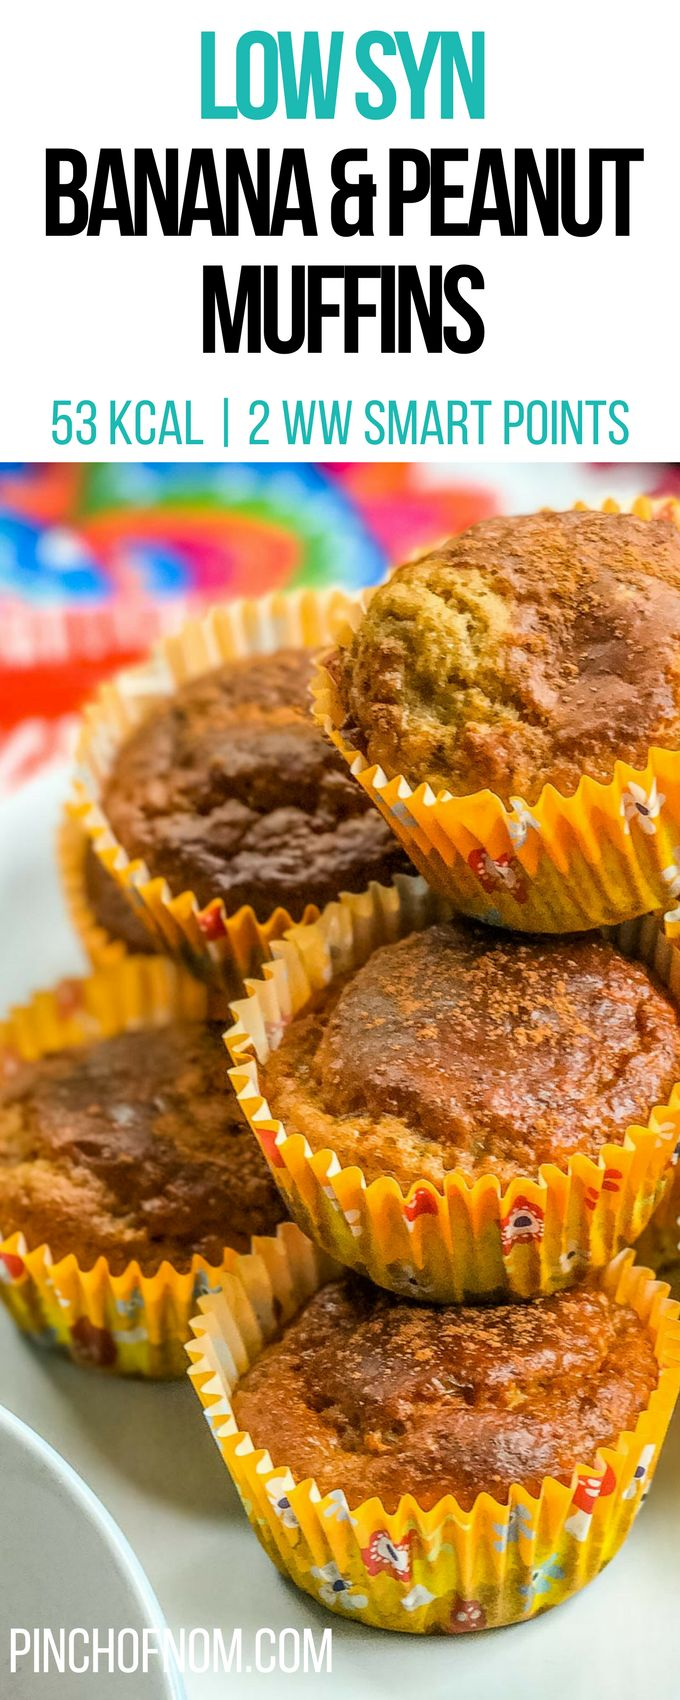 Low Syn Banana and Peanut Muffins | Pinch Of Nom Slimming World Recipes 53 kcal | 1.5 Syns | 2 Weight Watchers Smart Points